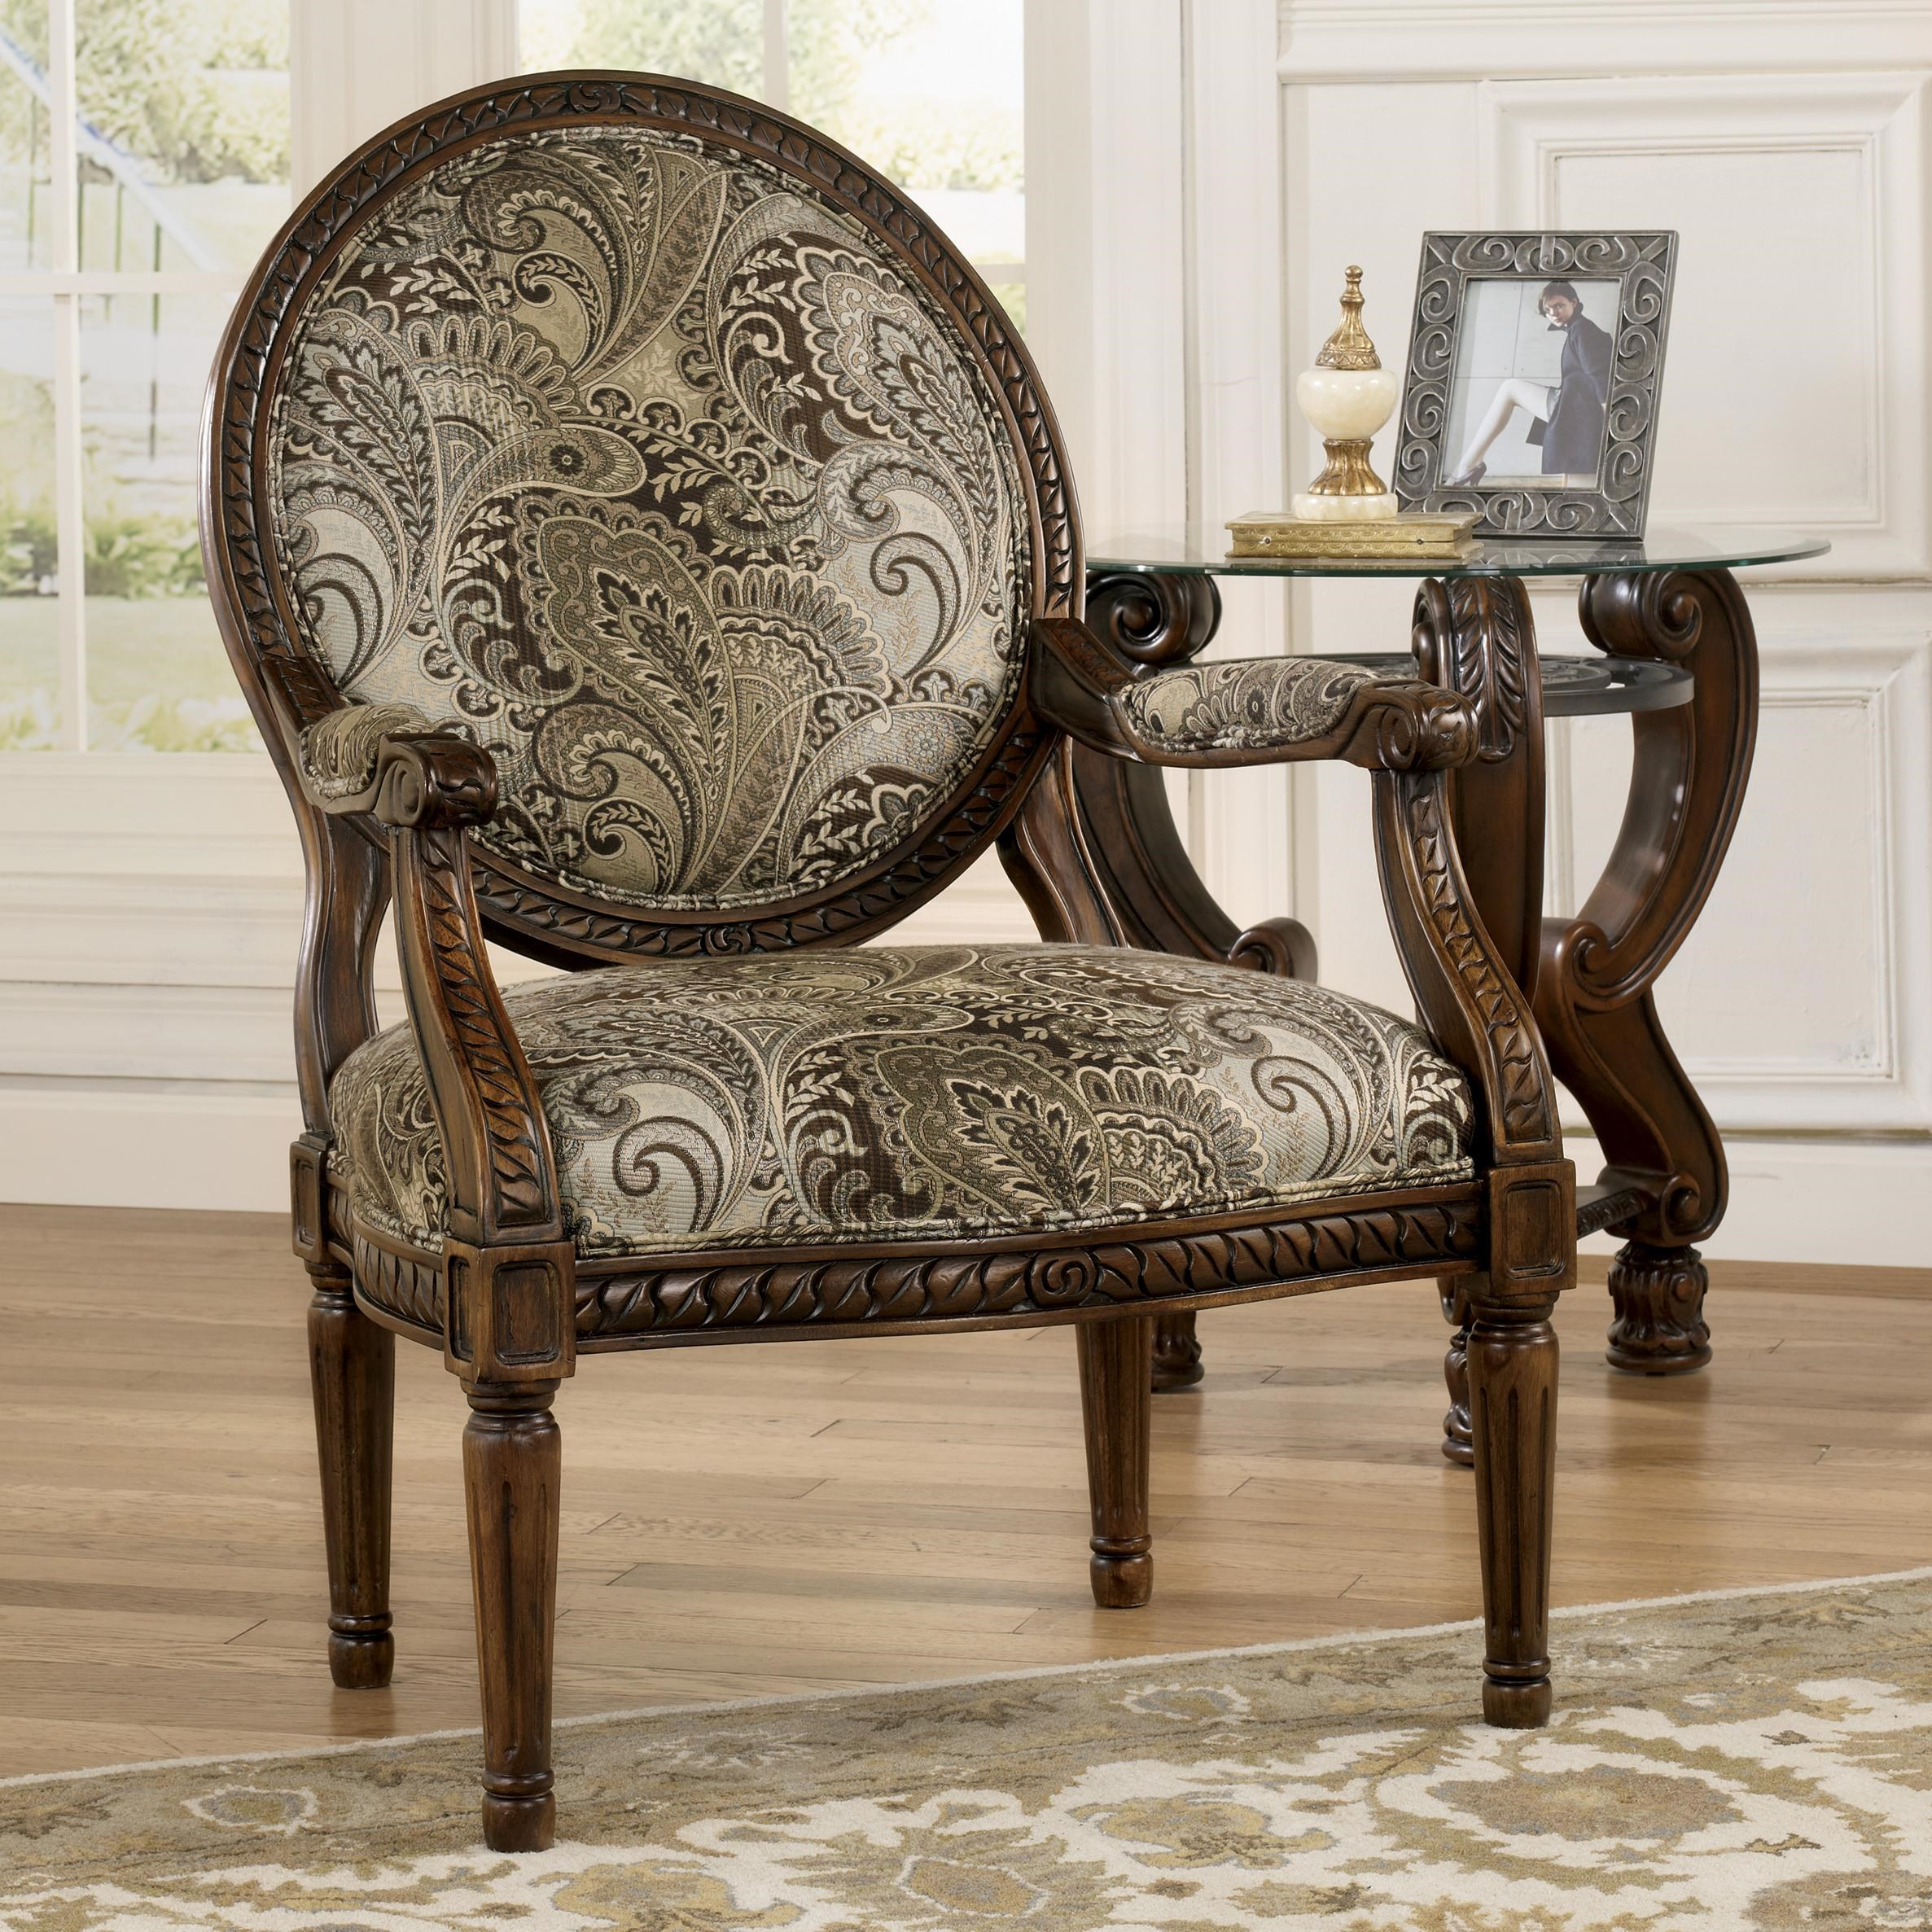 Signature Design By Ashley Martinsburg Traditional Showood Accent Chair  With Carved Wood Frame